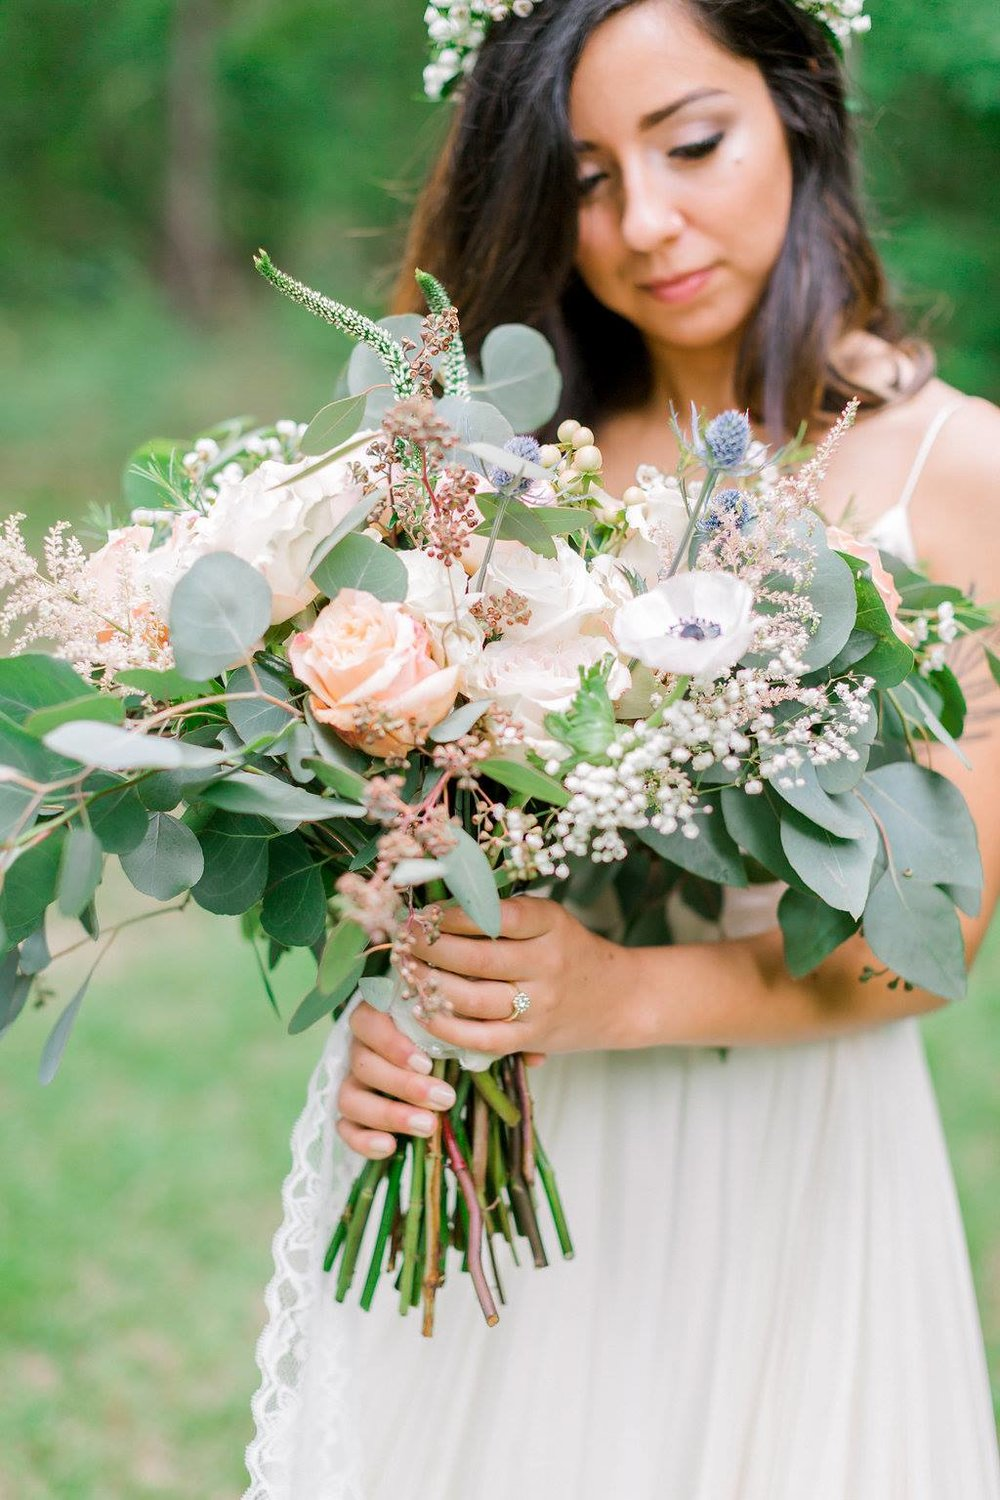 We believe we are selling an experience, not just flowers. -